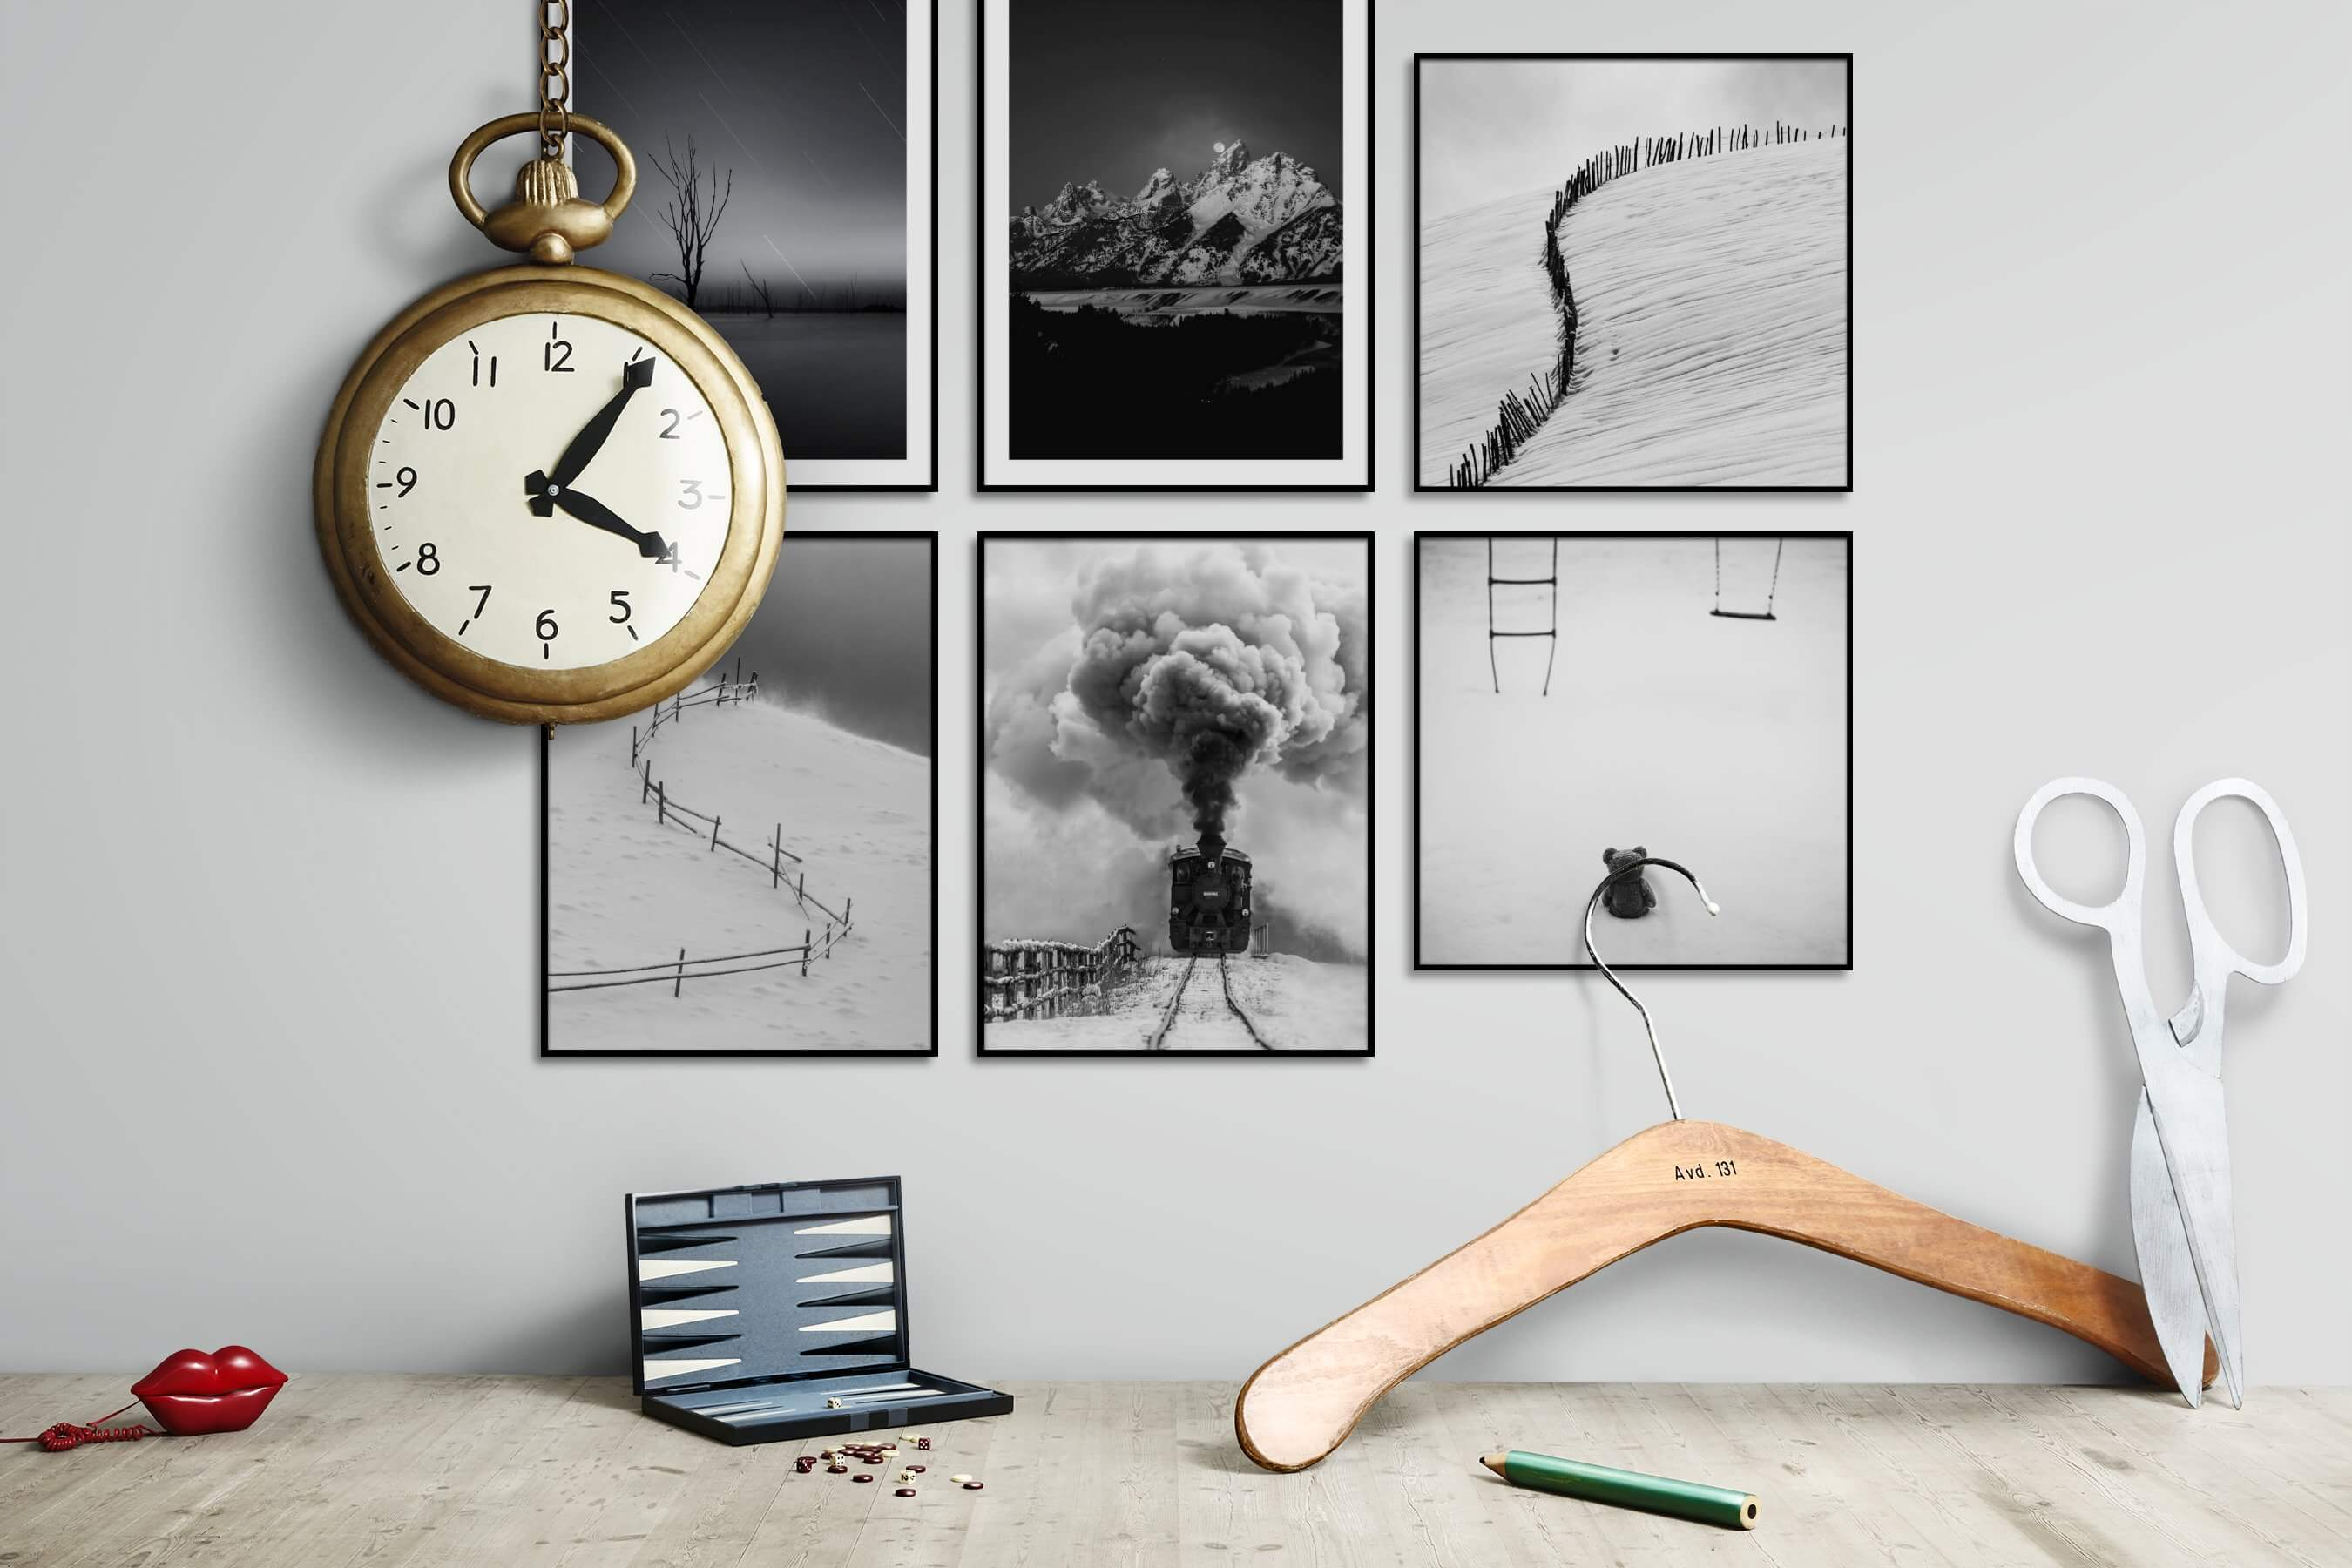 Gallery wall idea with six framed pictures arranged on a wall depicting Black & White, For the Minimalist, Nature, Country Life, Vintage, and Artsy